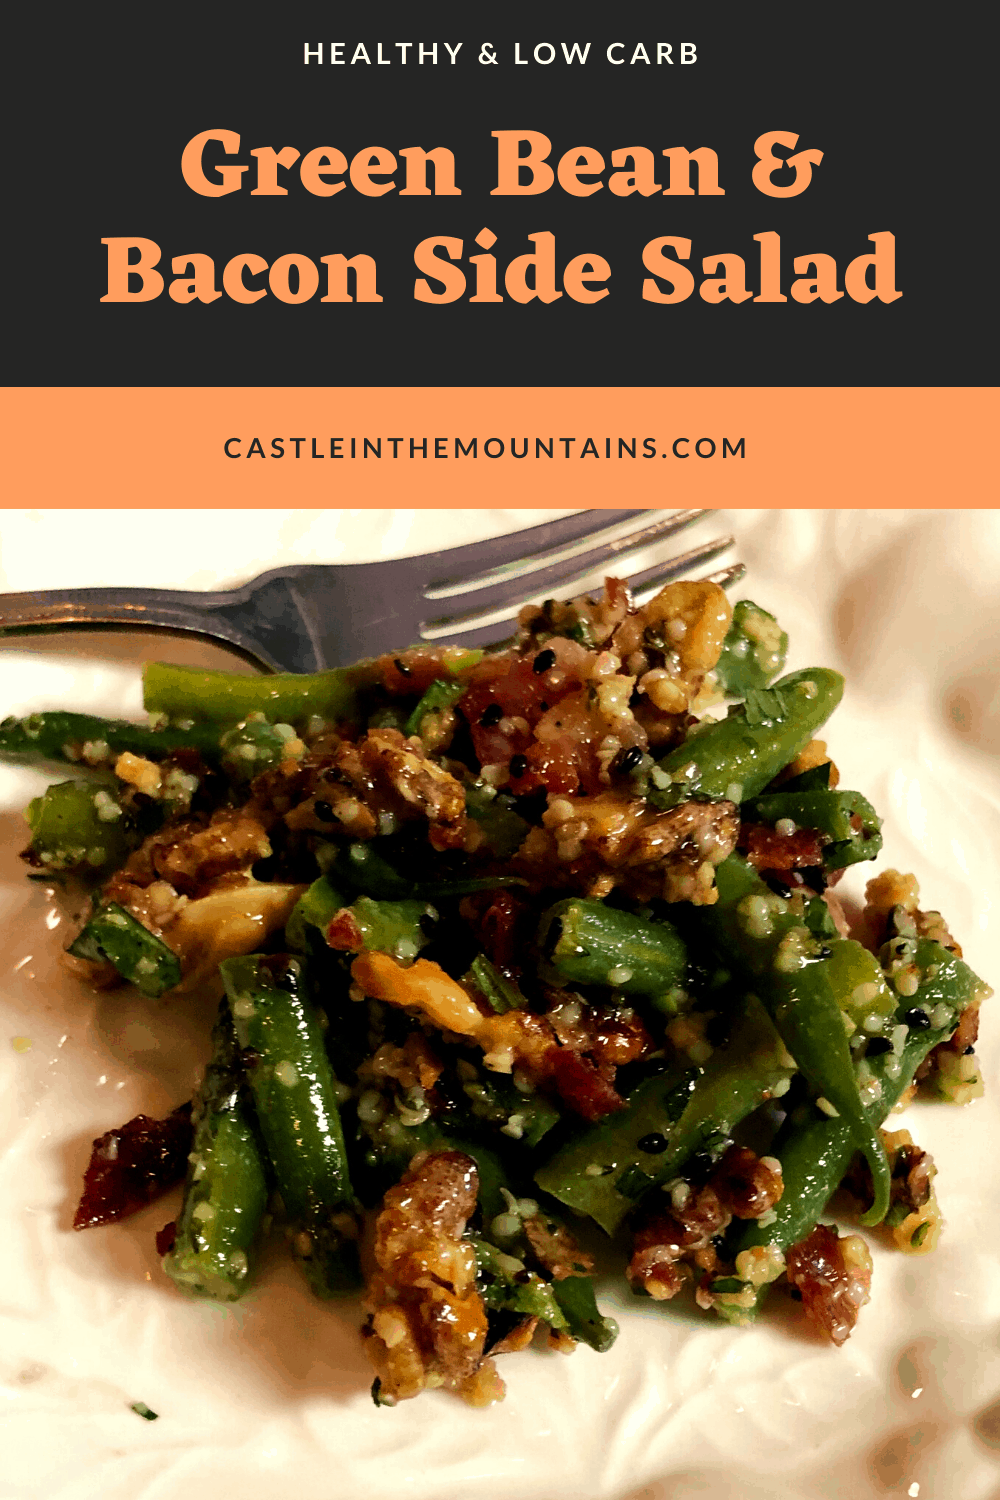 Crispy Green Bean Salad Recipe